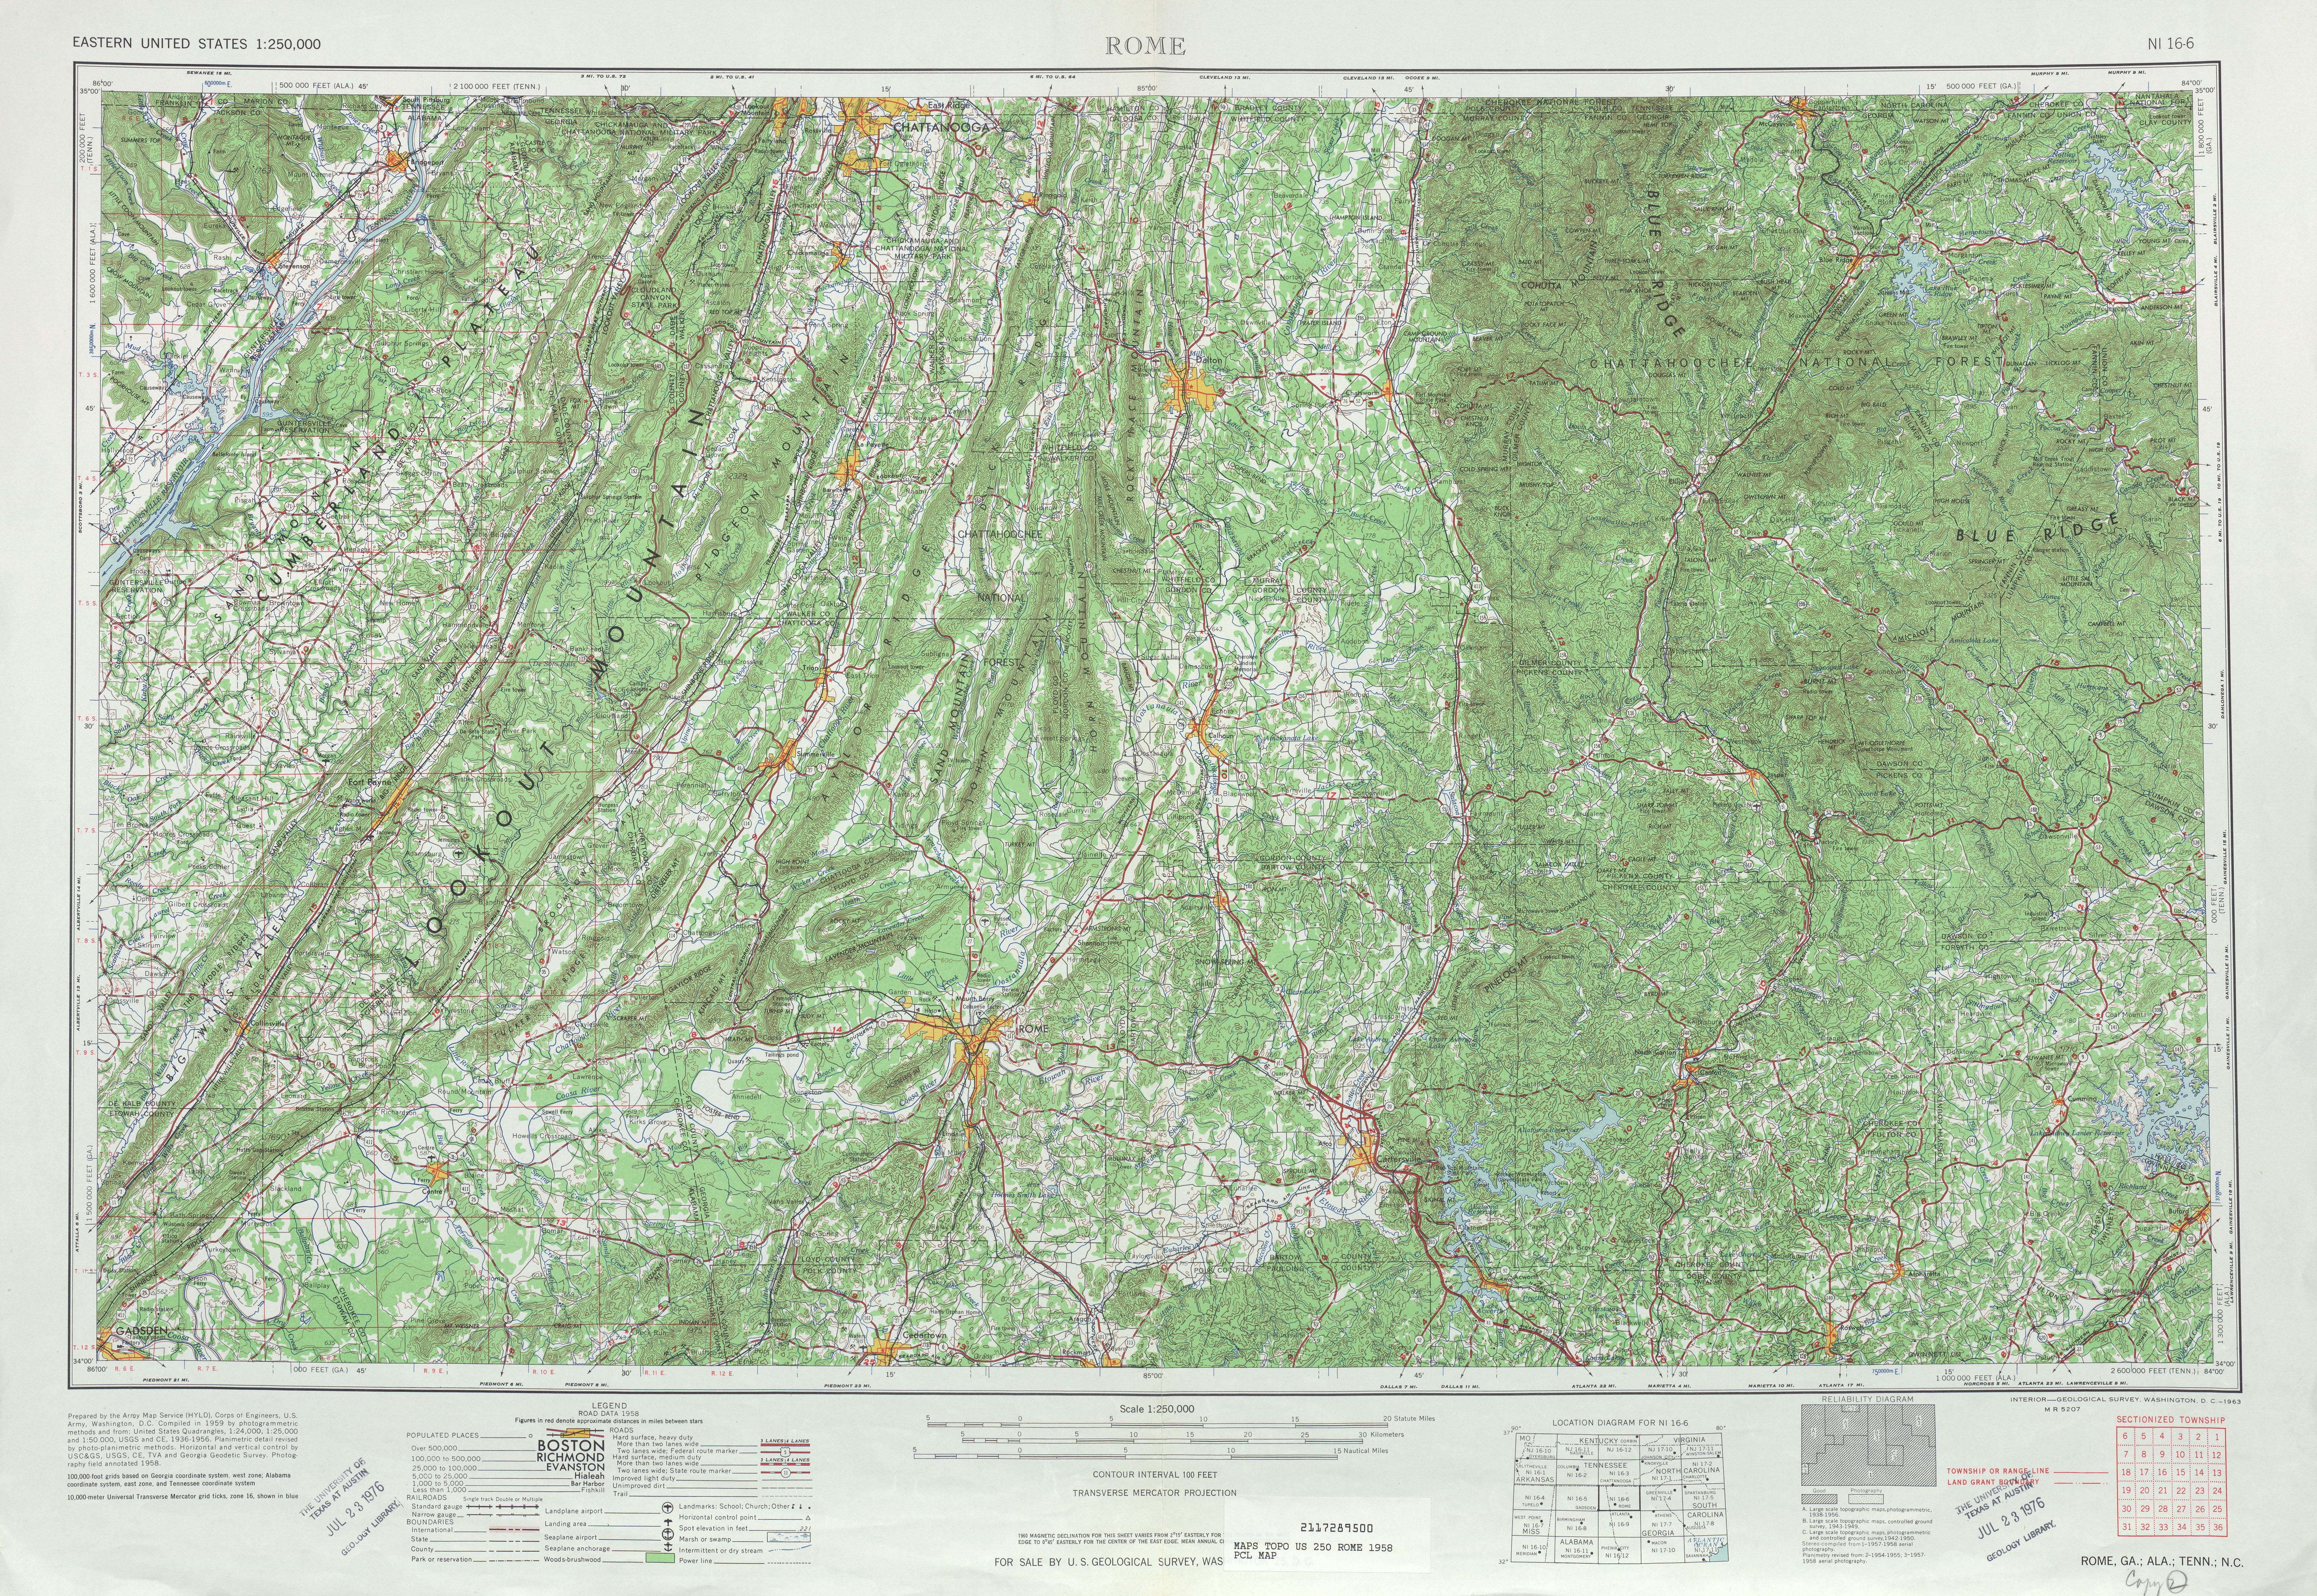 Rome Topographic Map Sheet, United States 1968